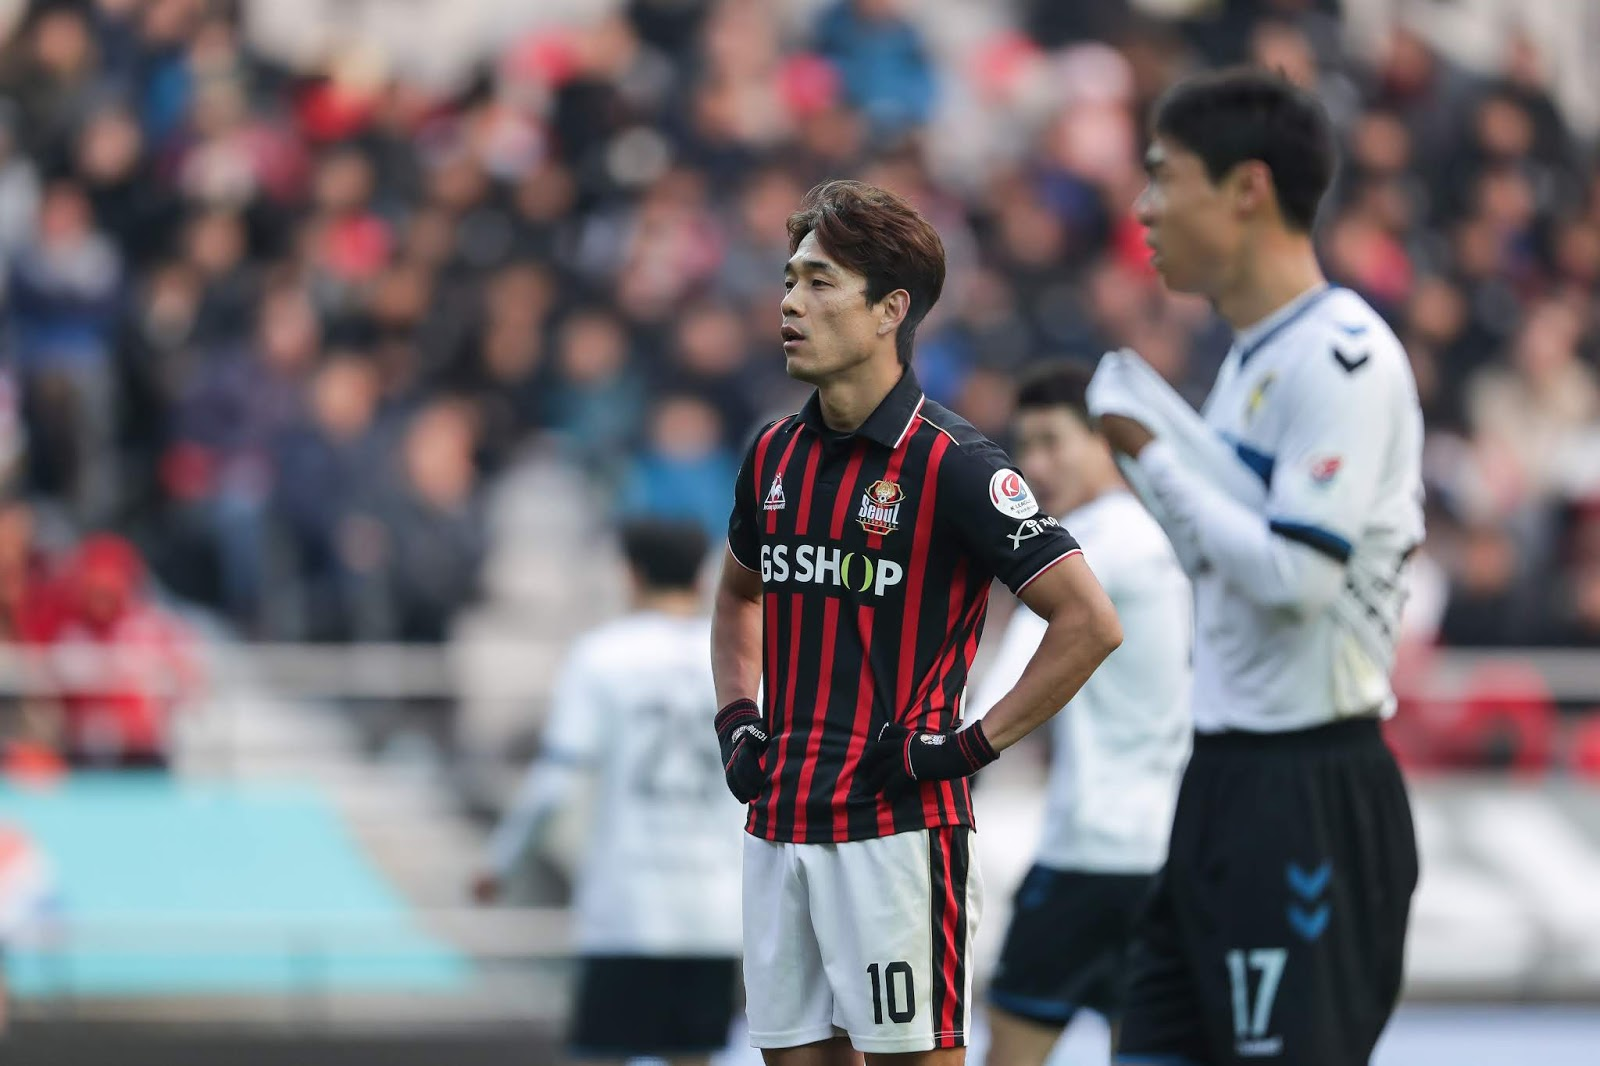 Recap: FC Seoul 0-1 Incheon United K League 1 Relegation Round Park Chu-young